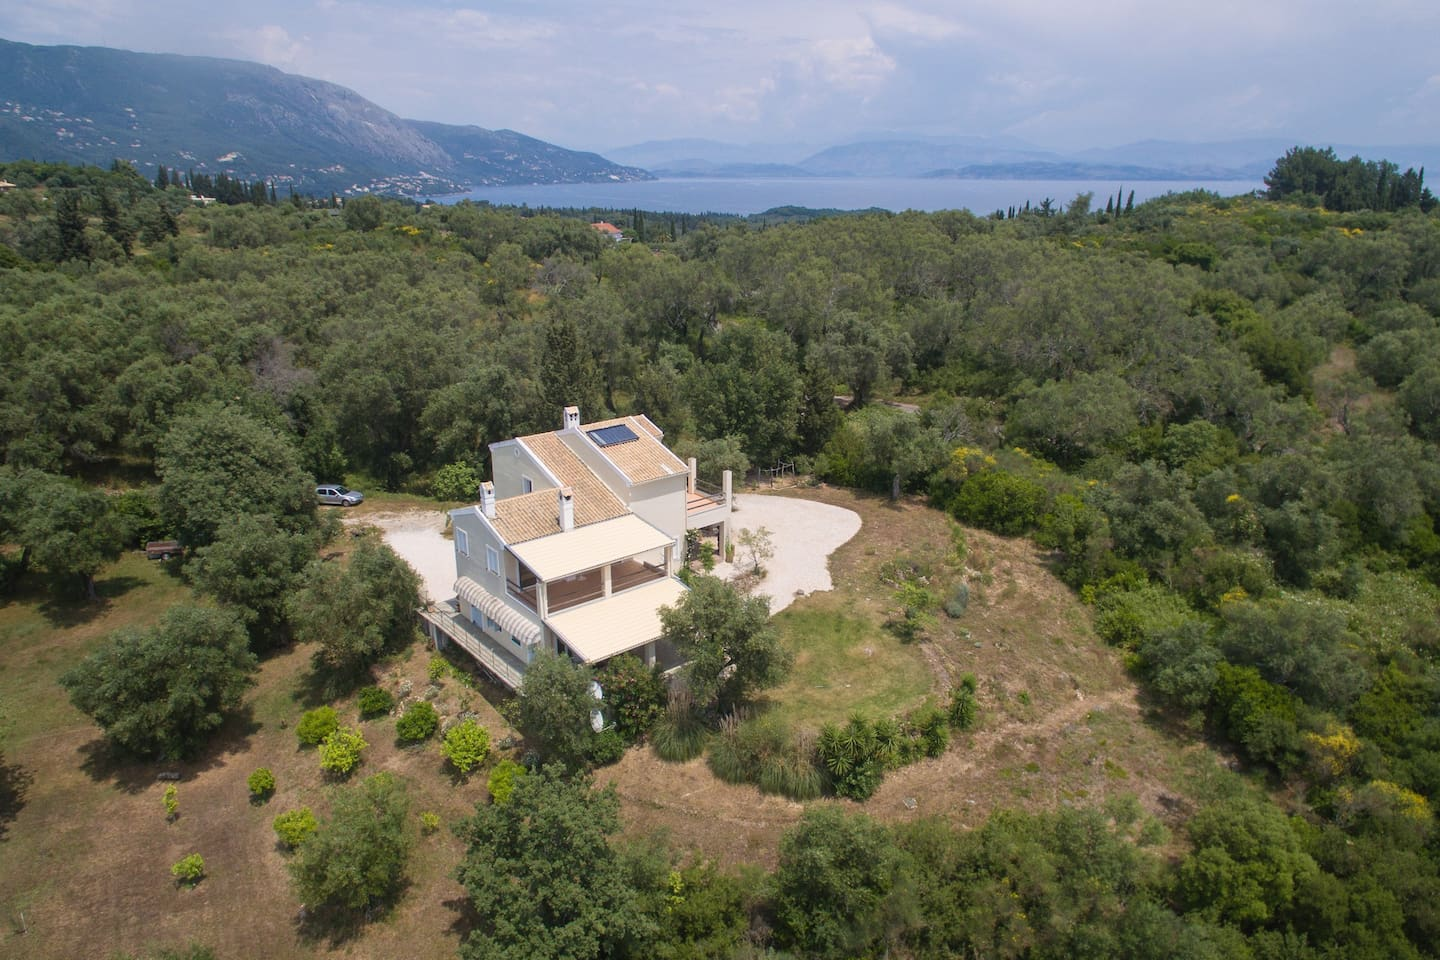 Holidays in an olive grove - Corfu